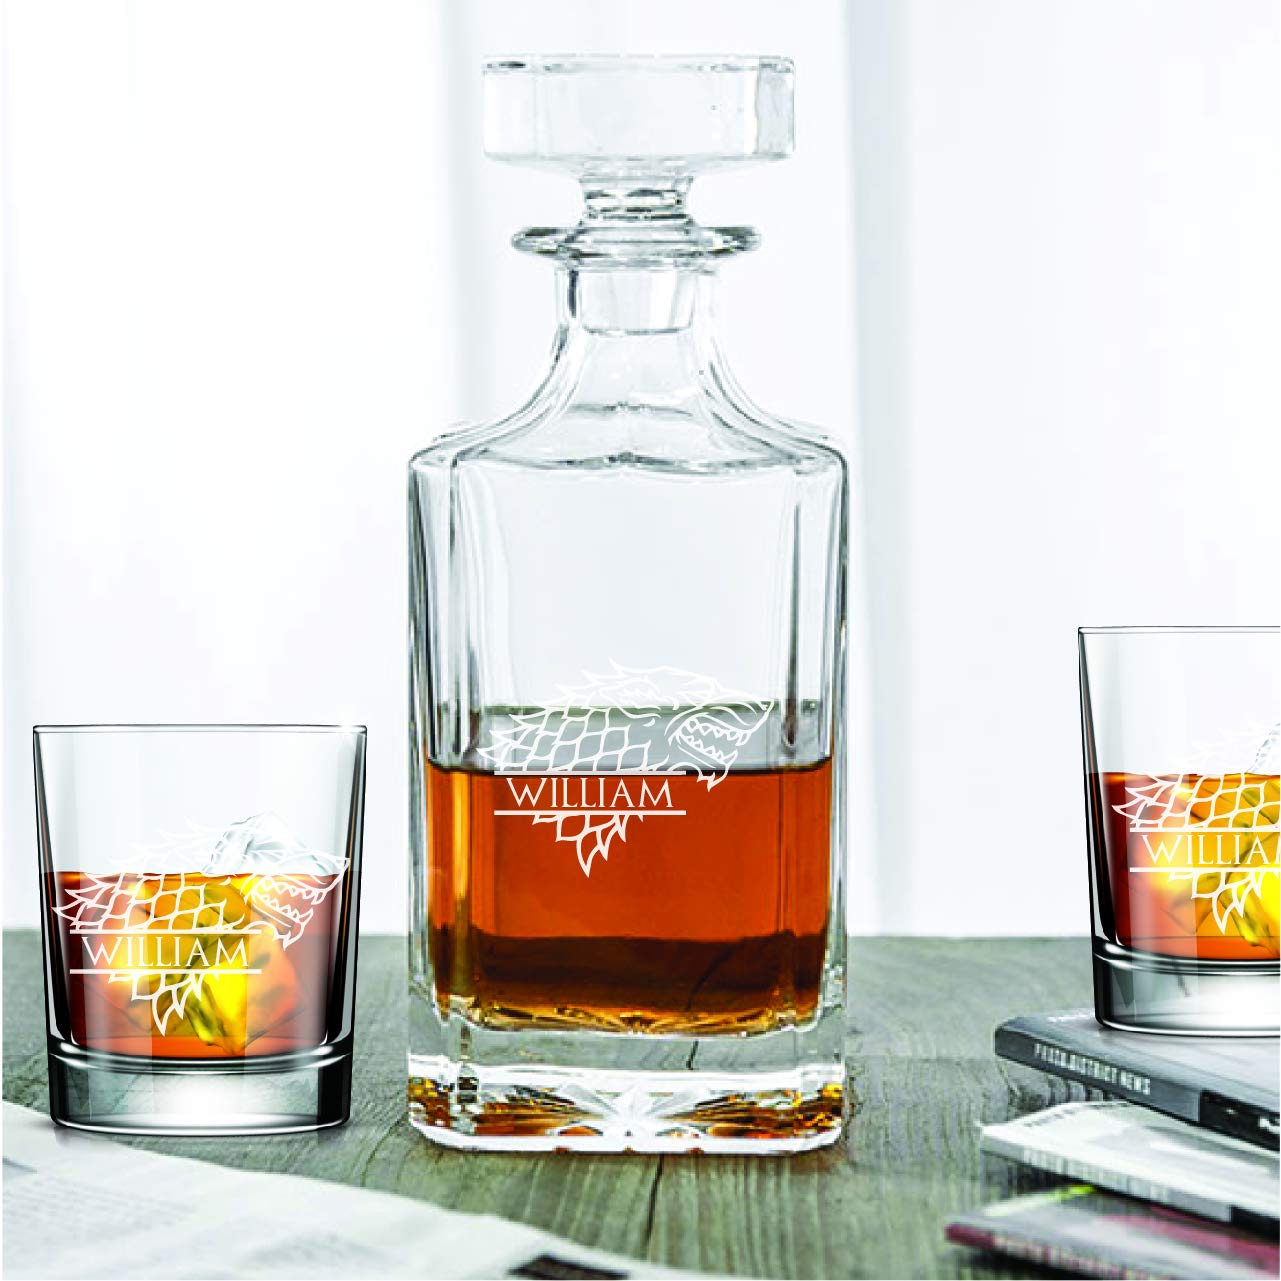 Personalized Classic Whiskey Decanter Gift Set - House Stark Game of Thrones - Decanter and 10oz Rocks Glasses - 3PCS